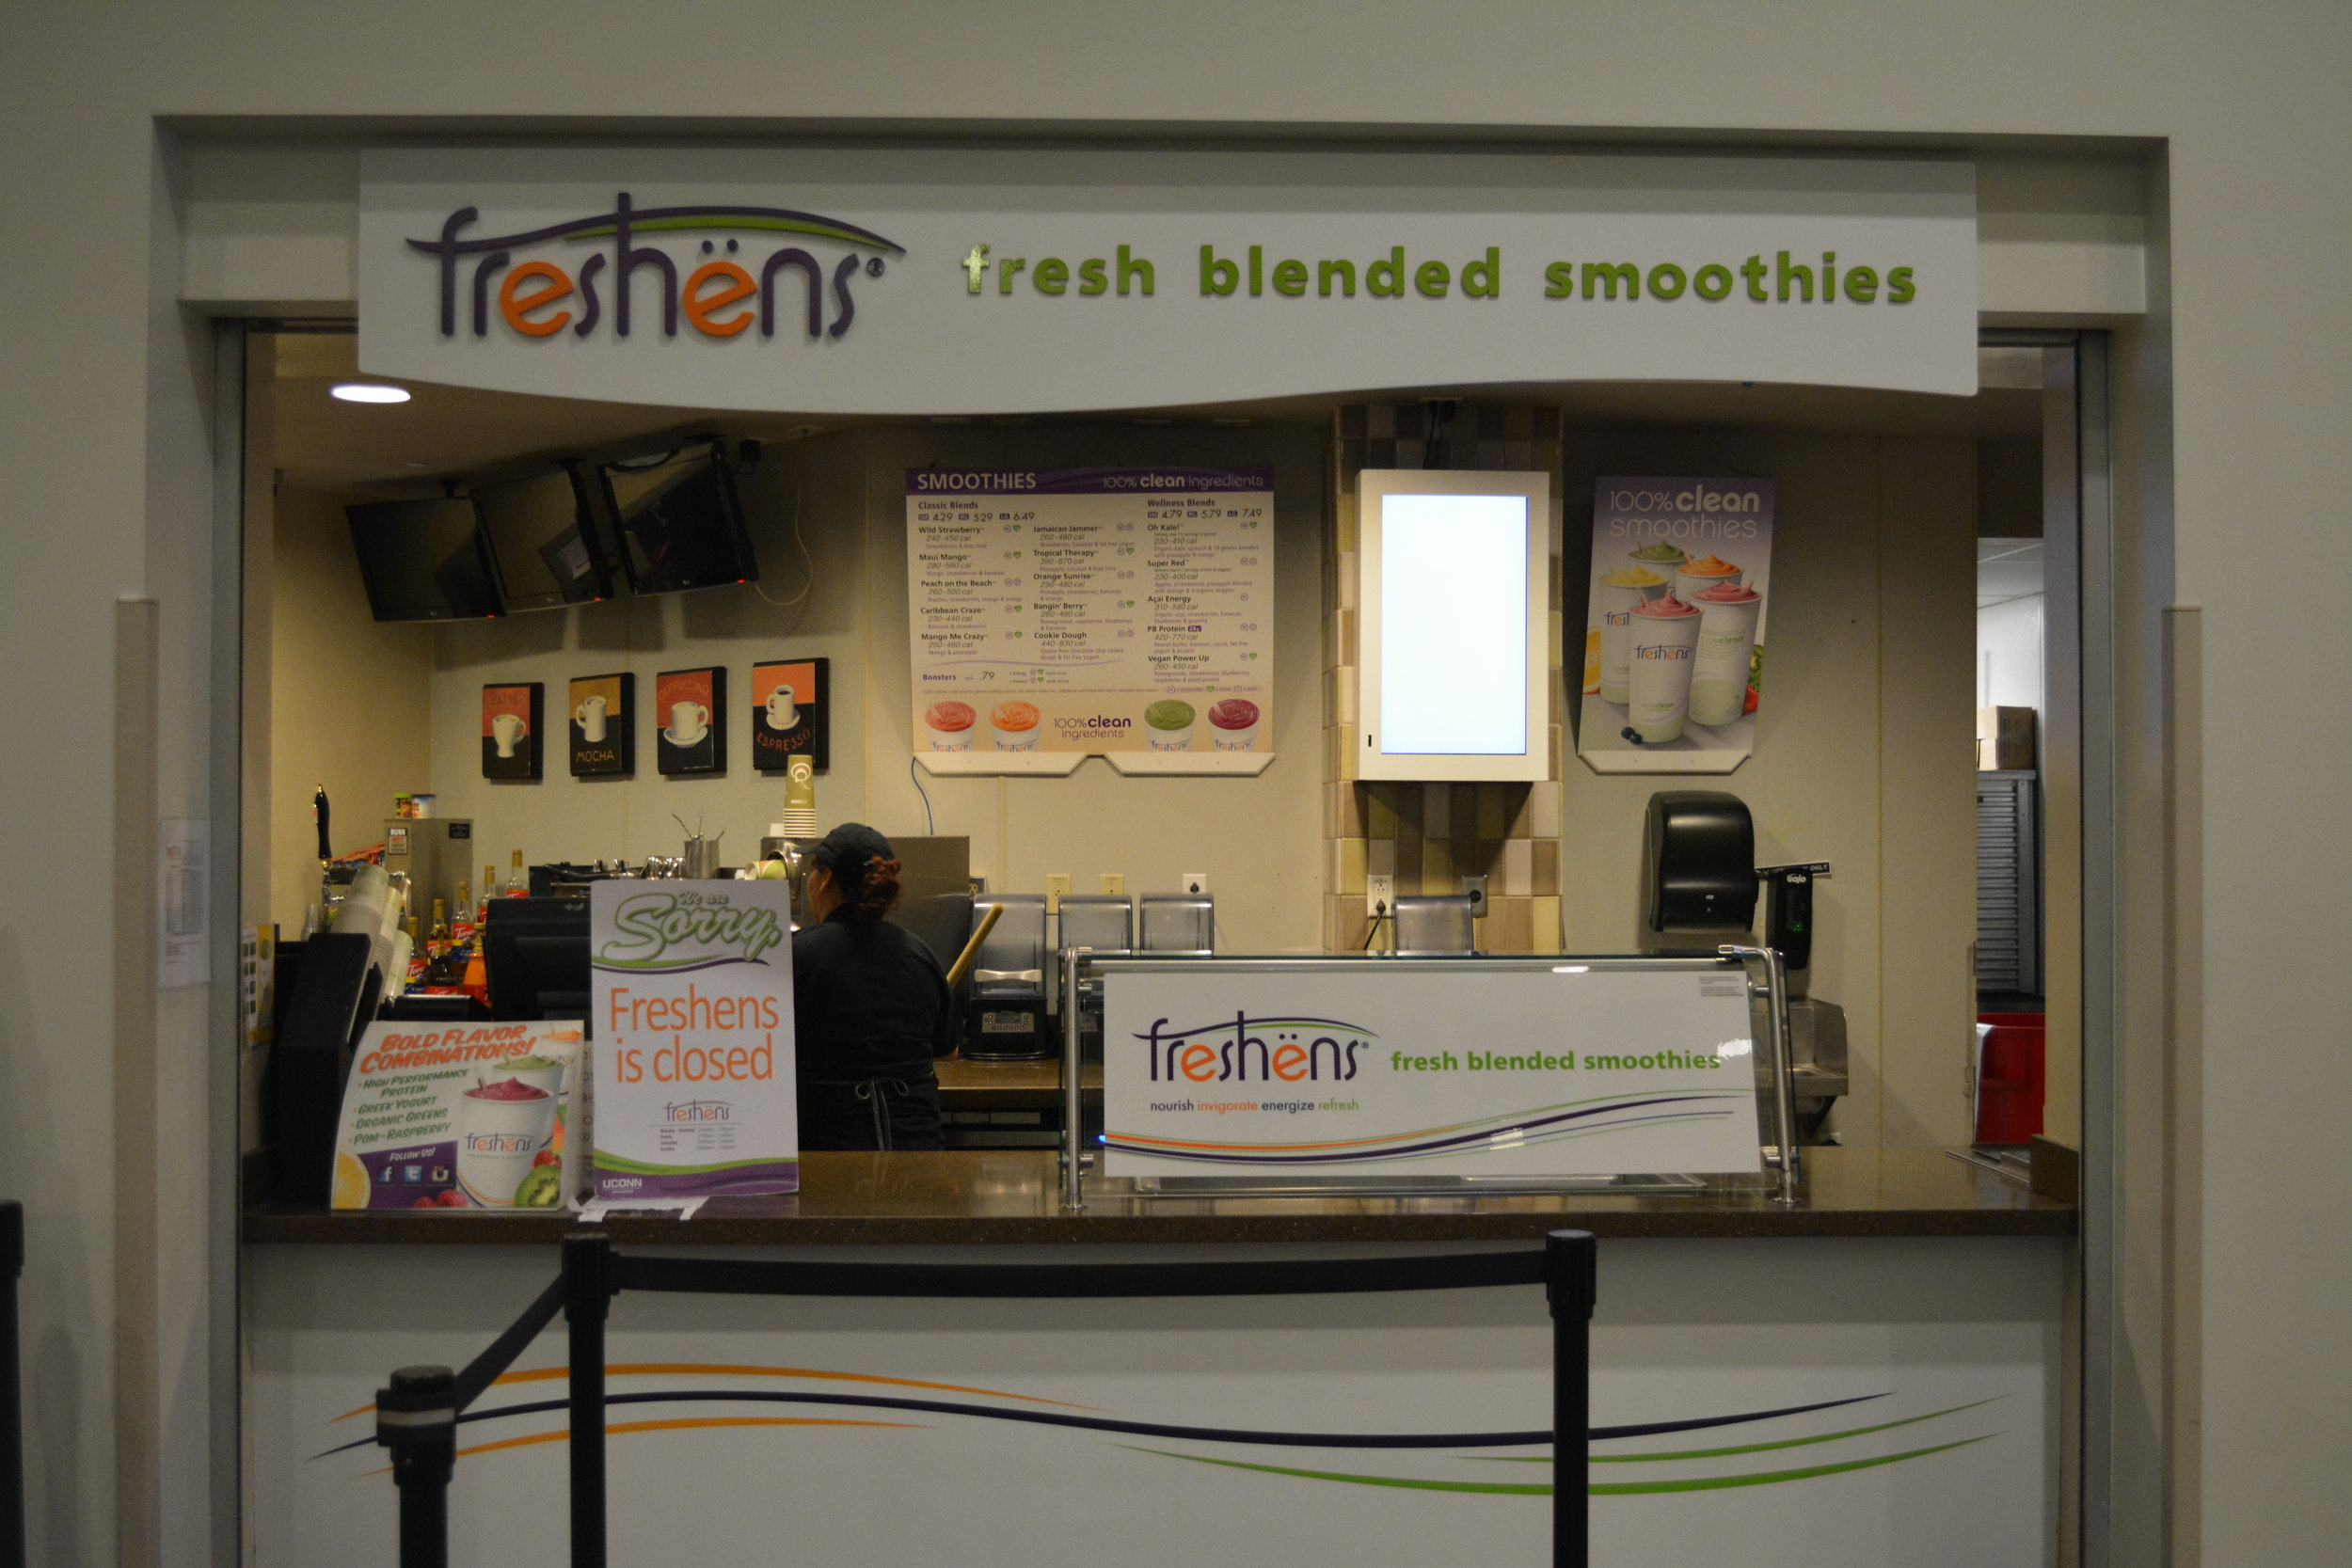 Freshens is a smoothie place at the Union that accepts points. They offer a variety of flavors from fruit flavors to peanut butter. (Photo by Chloe Gu)